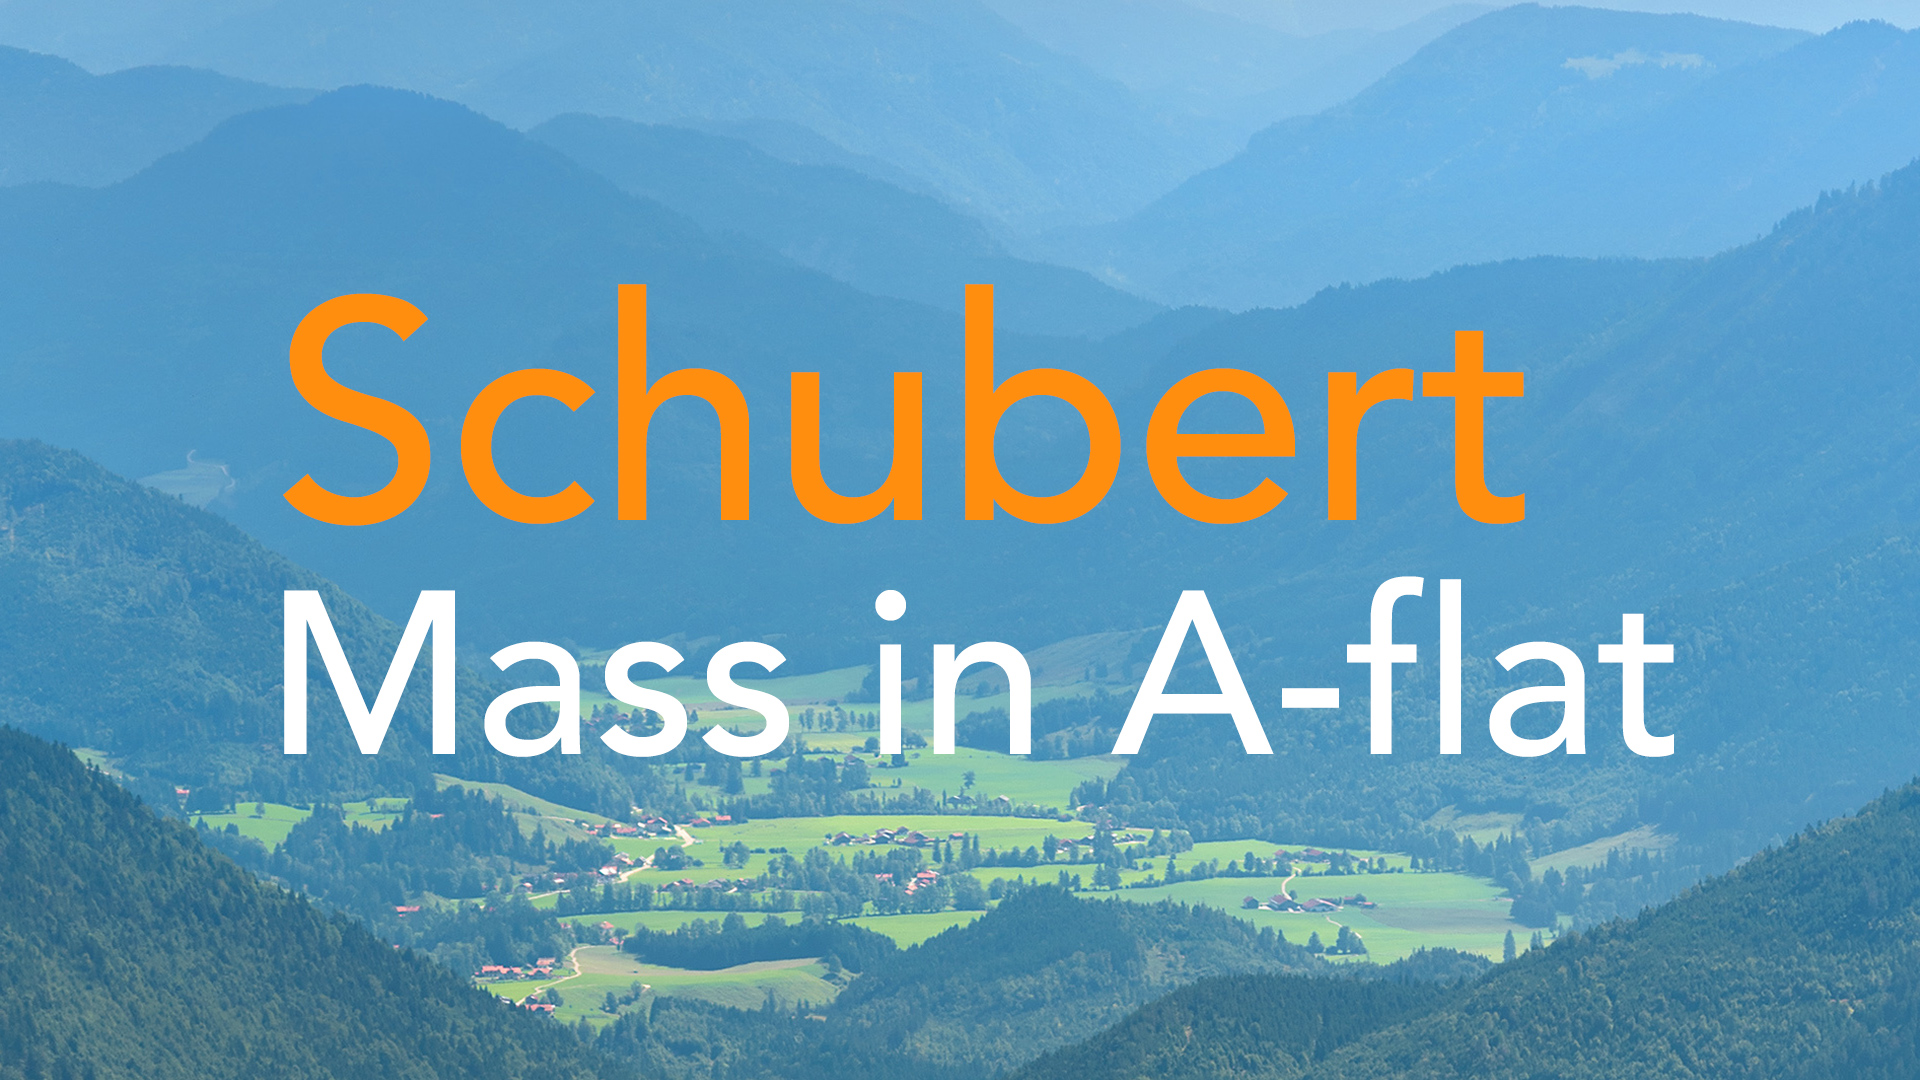 Schubert Mass in A-flat